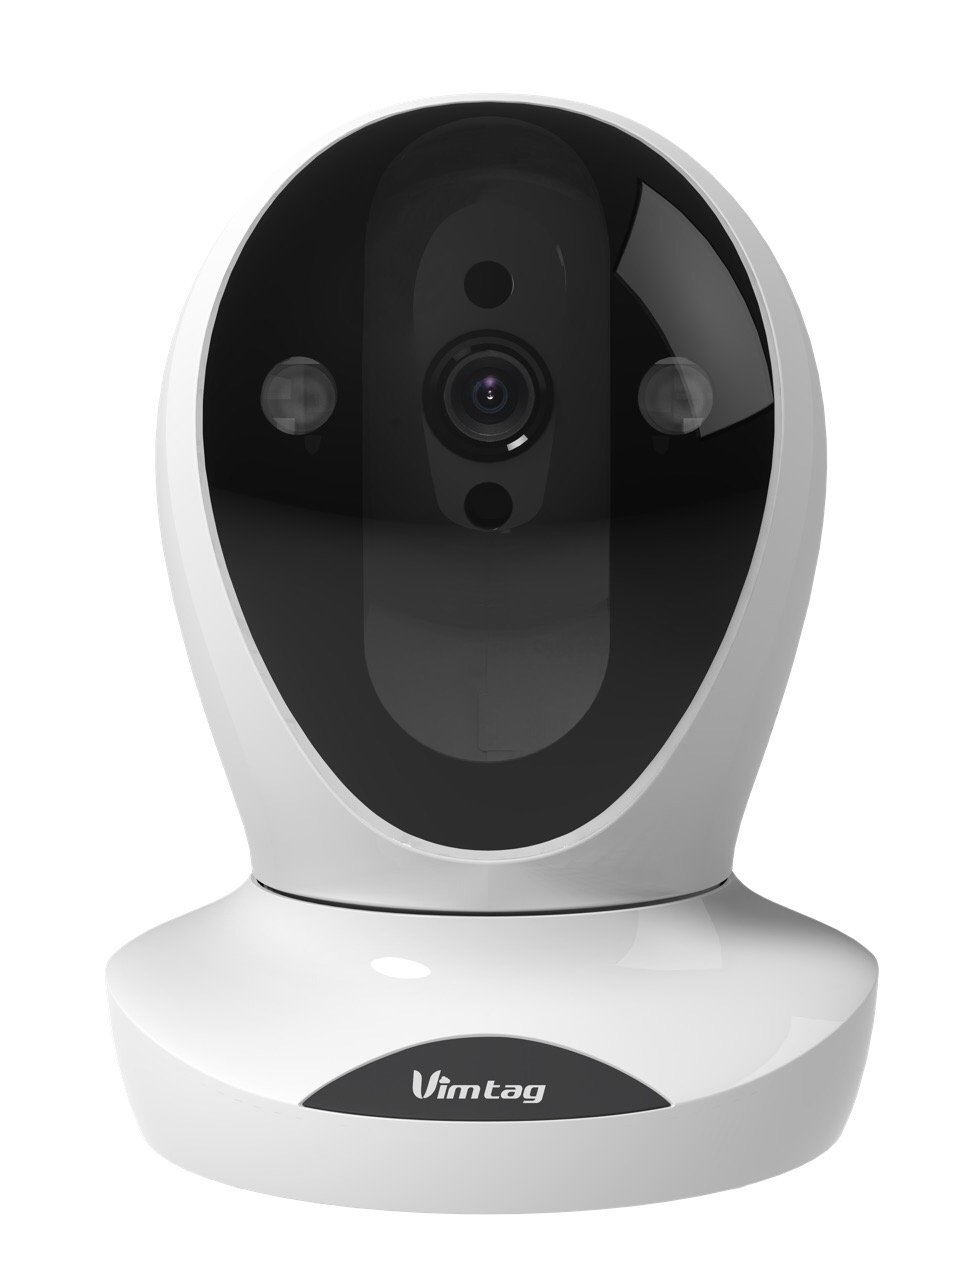 Vimtag P1 ULTRA IP Wireless Network Security Camera, Plug/Play, Pan/Tilt with Two-Way Audio and Night Vision (Updated Version of VT-361)